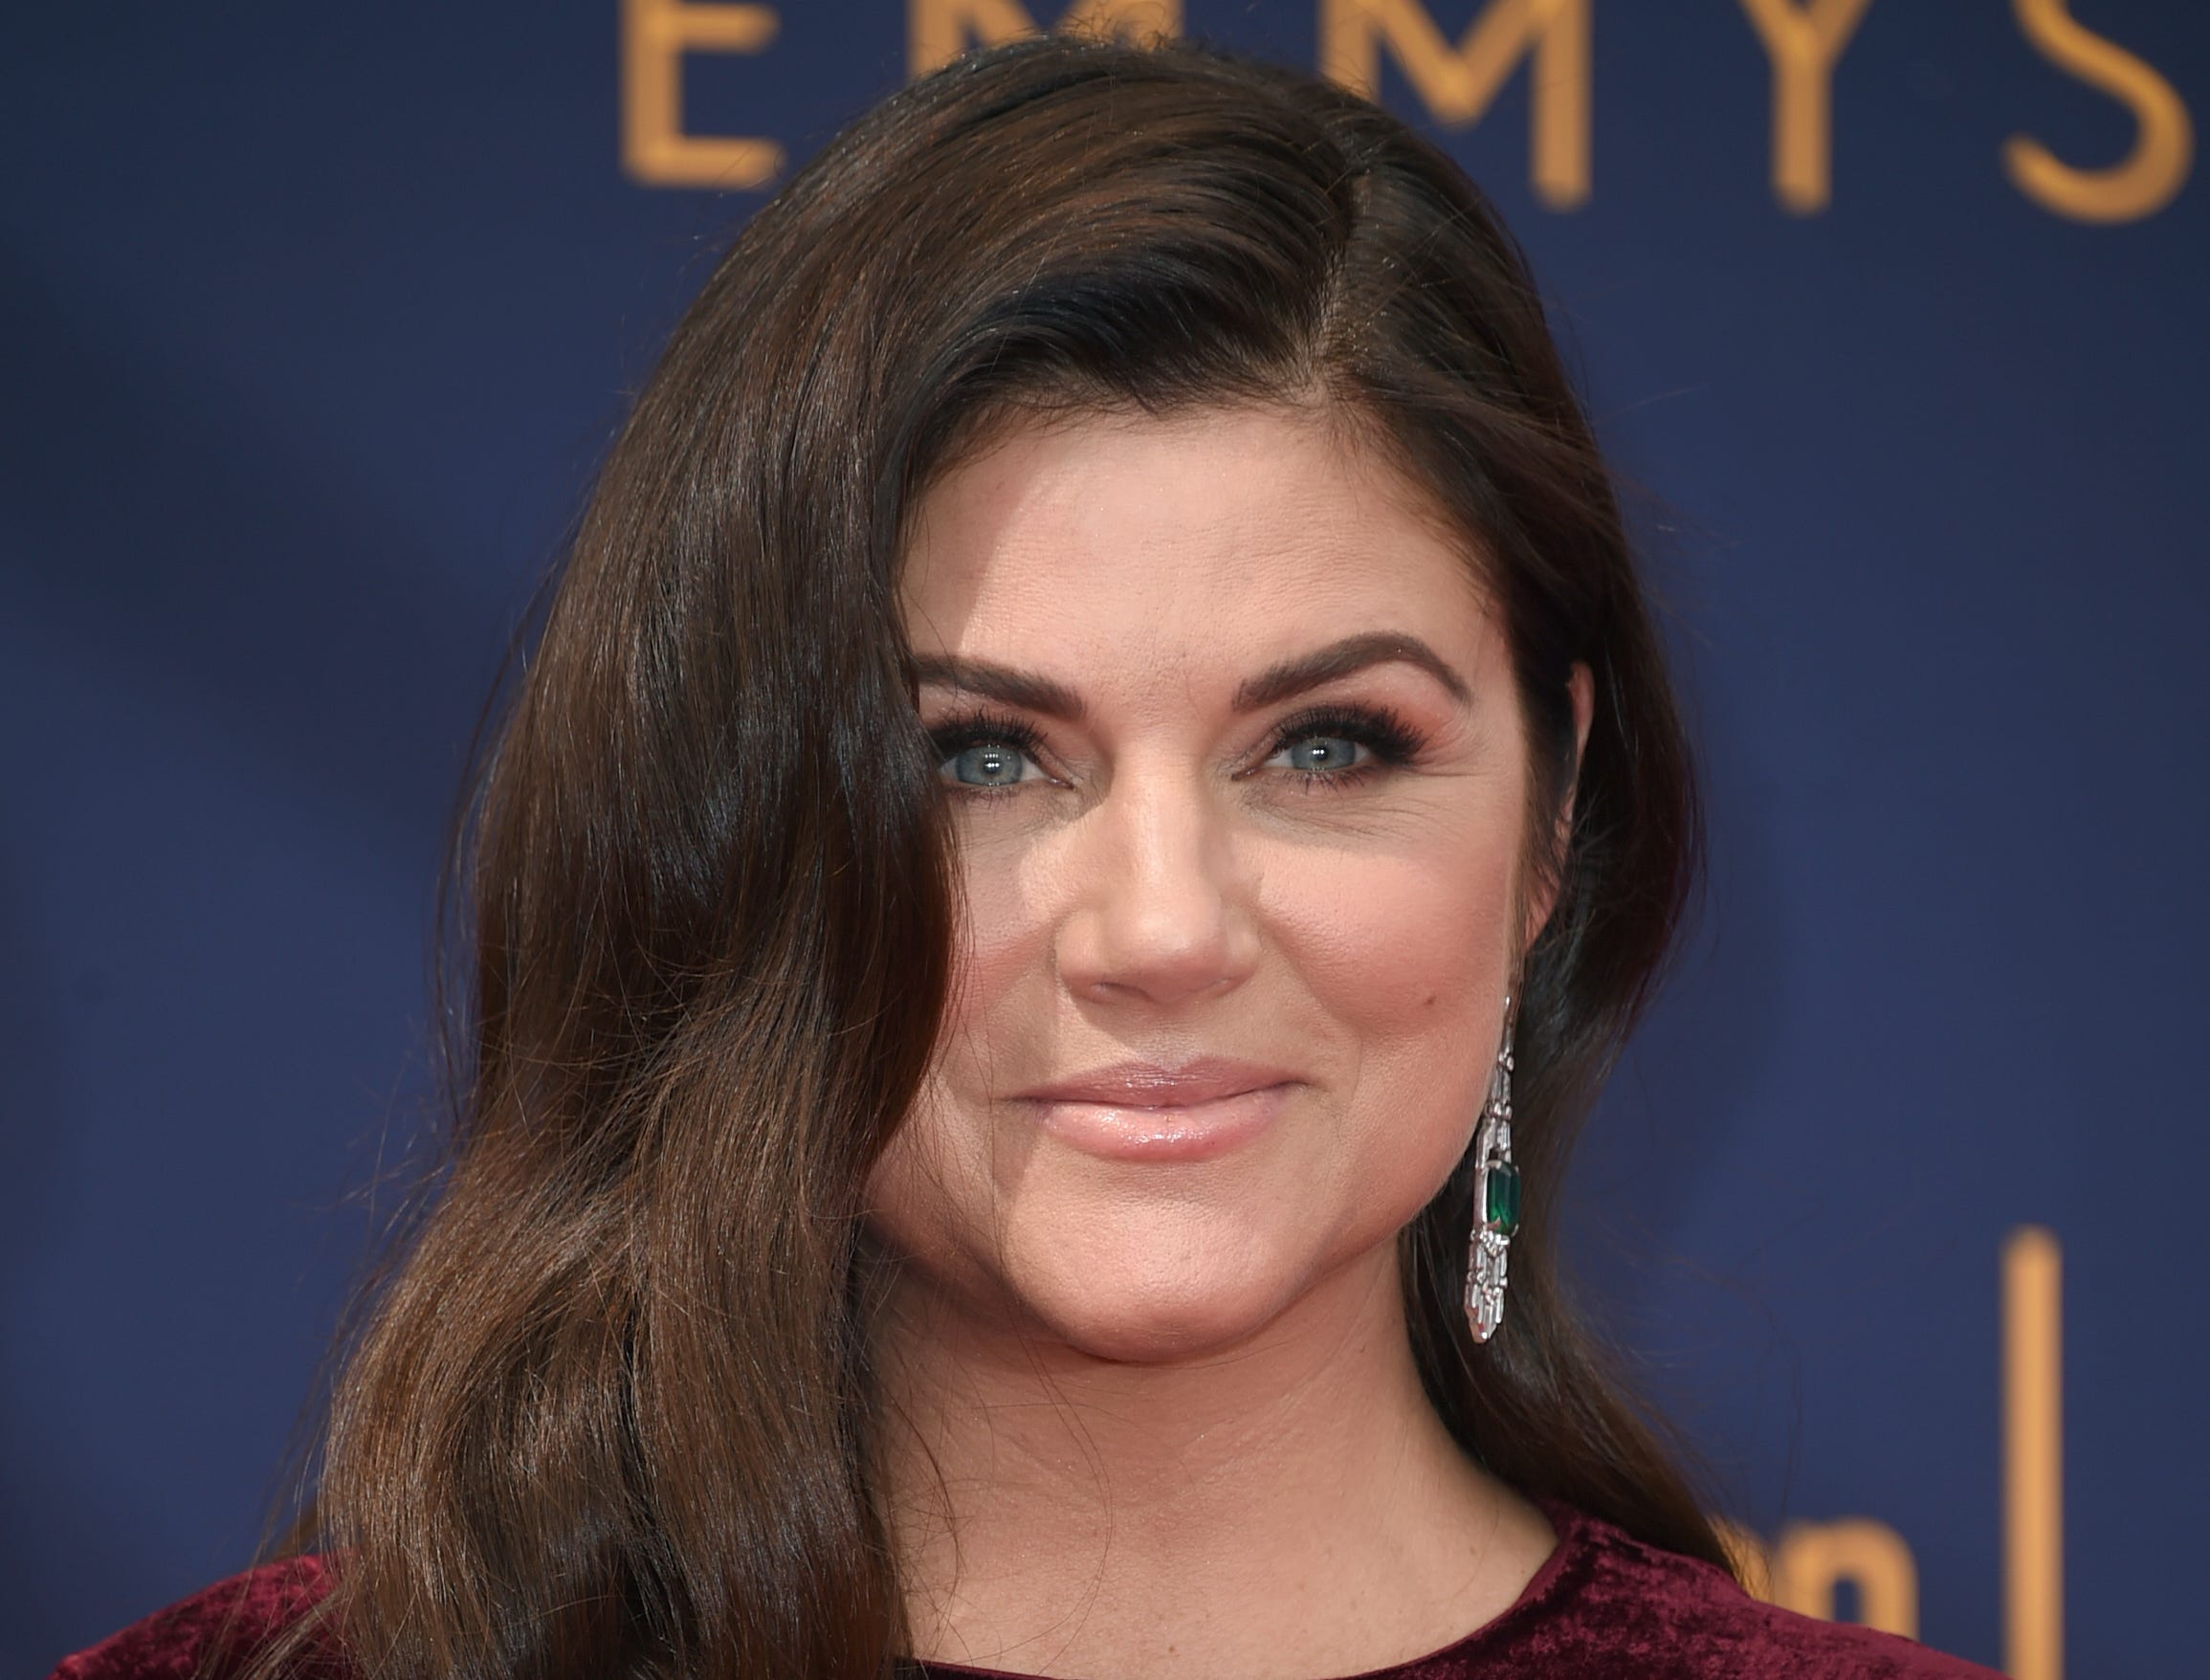 Tiffani Thiessen arrives at night one of the Creative Arts Emmy Awards at The Microsoft Theater on Saturday, Sept. 8, 2018, in Los Angeles. (Photo by Richard Shotwell/Invision/AP)